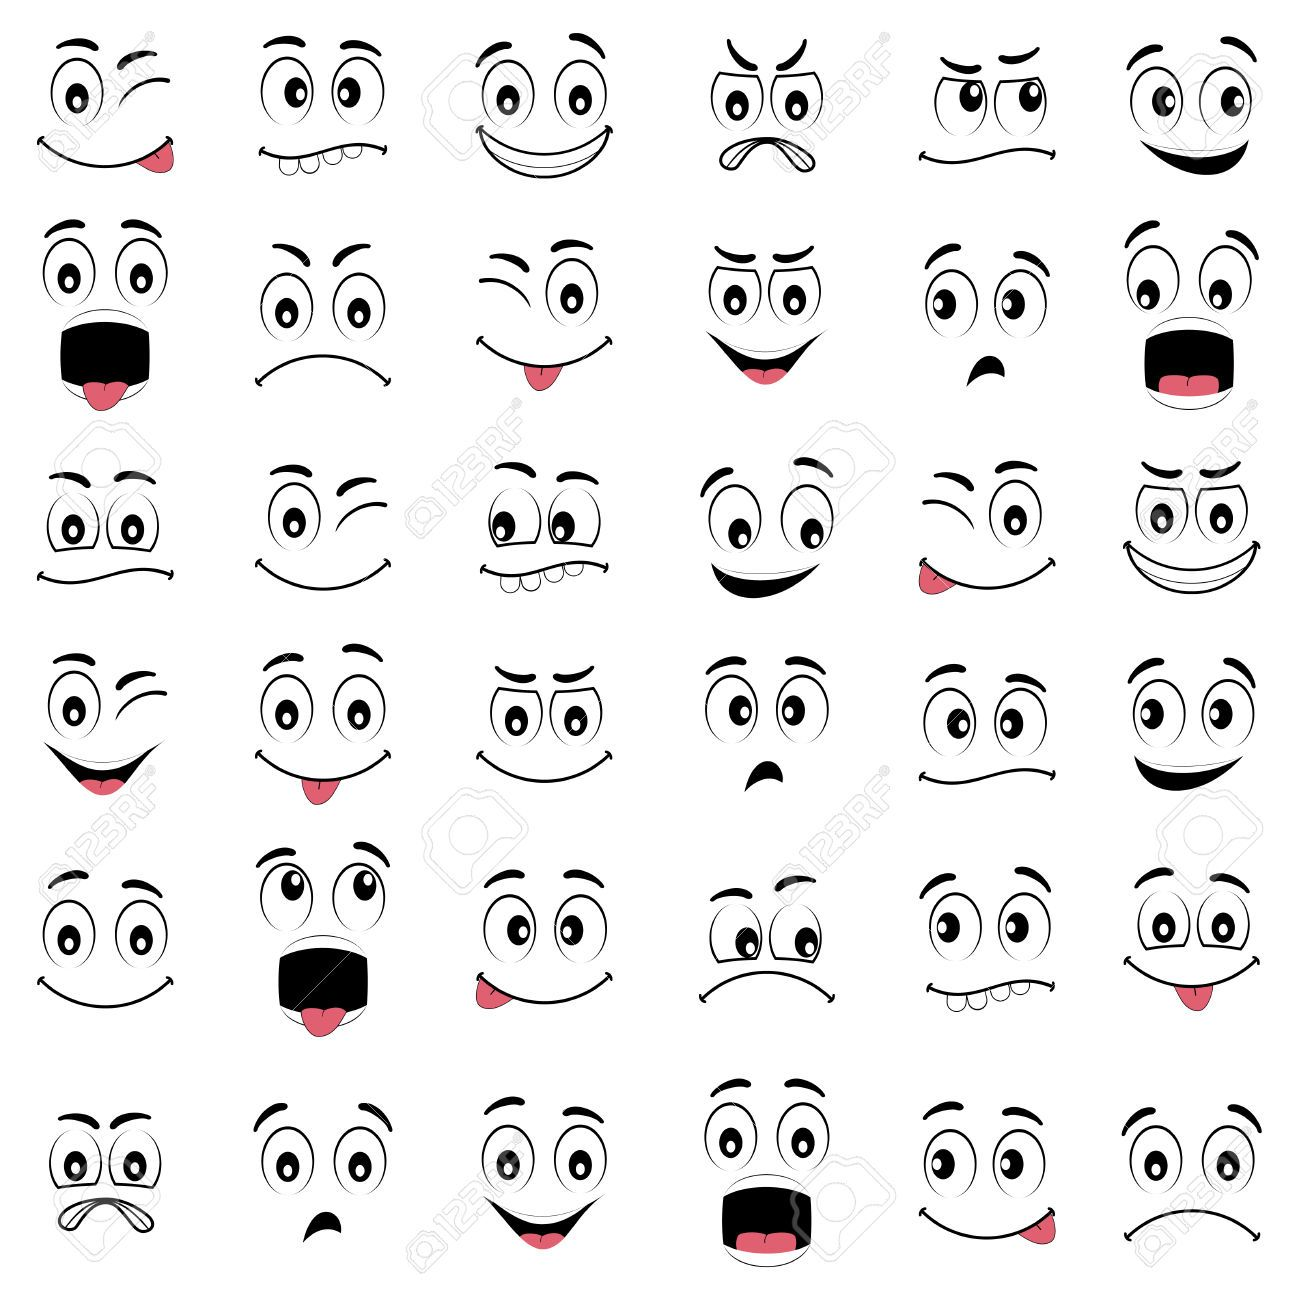 pin by ednor therriault on cartoon eyes cartoon faces cartoon cartoon face diagram [ 1299 x 1300 Pixel ]